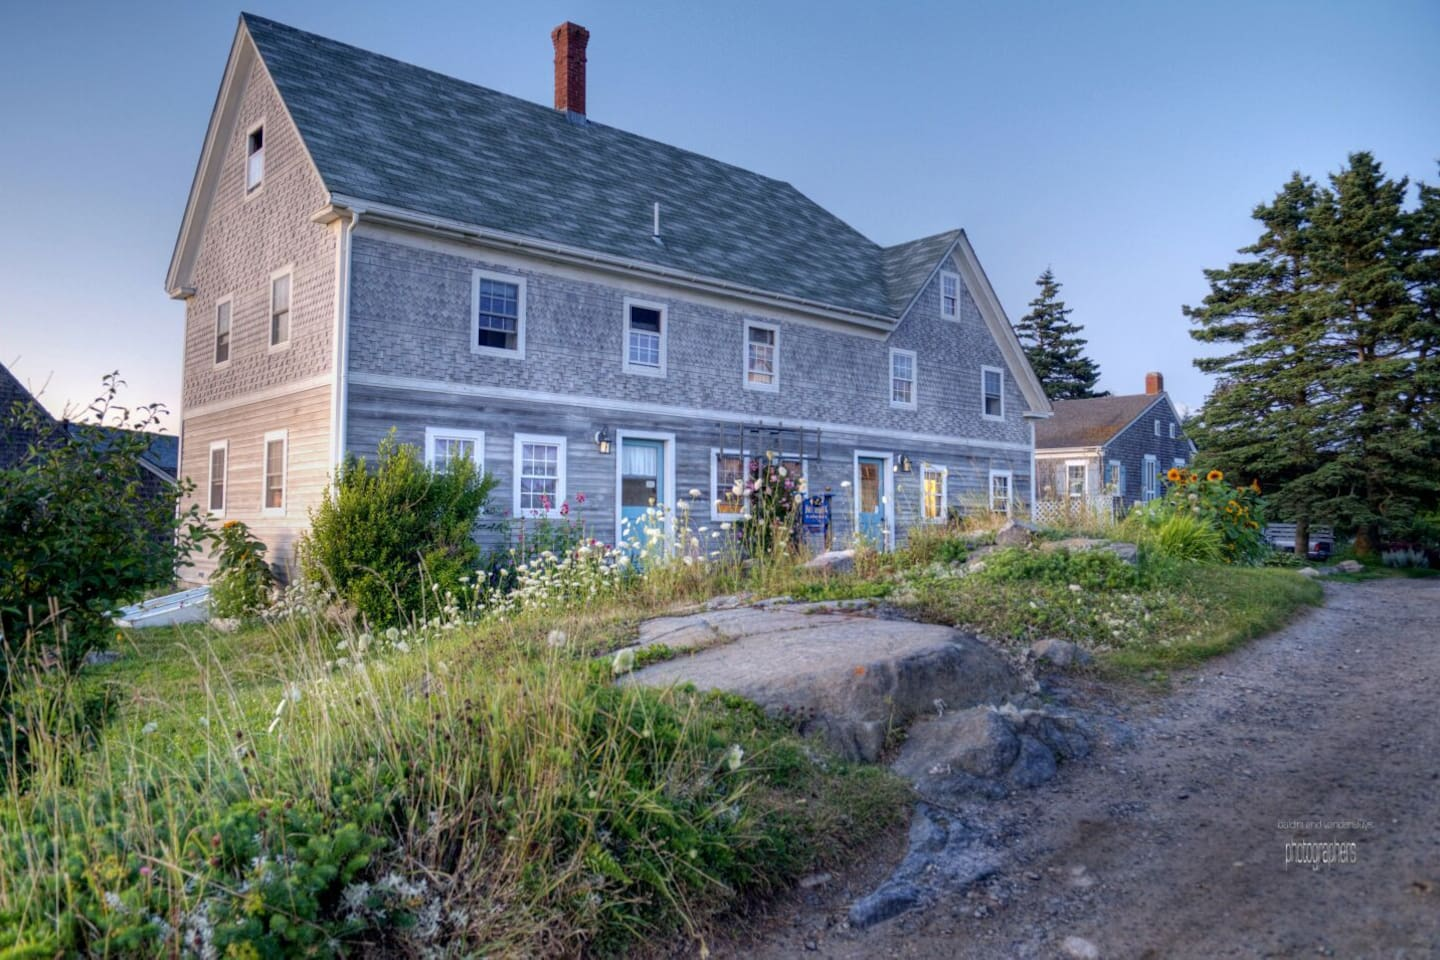 The John Sterling Harbor House sits on the side of the road. It is the first communal house on Monhegan and has been a landmark for over 200 years.